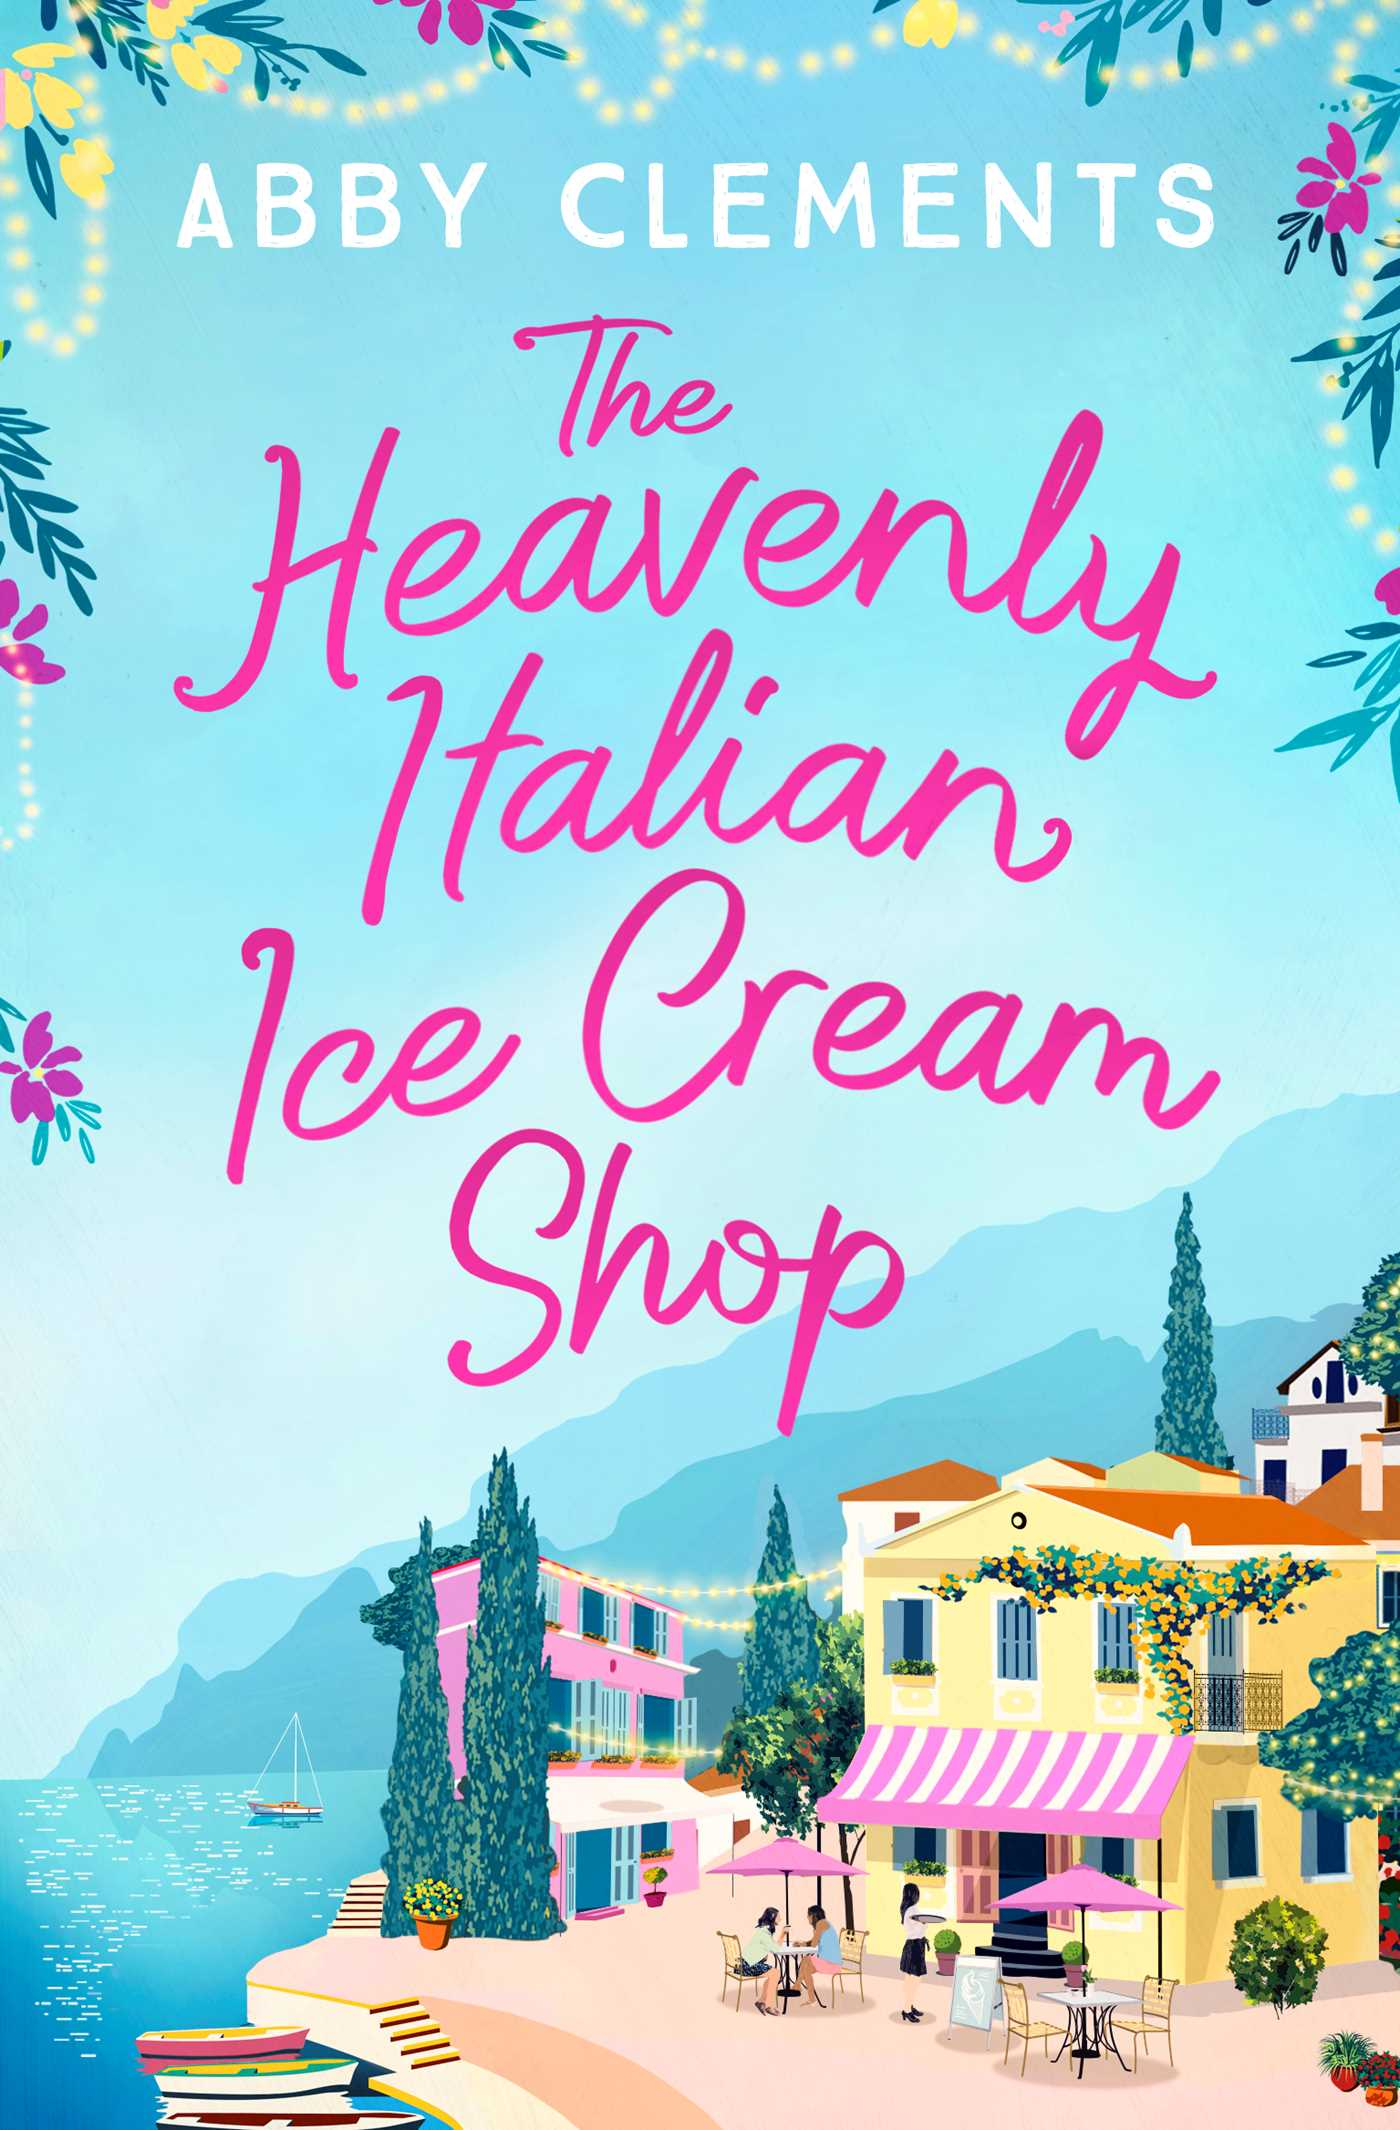 The heavenly italian ice cream shop 9781471137044 hr